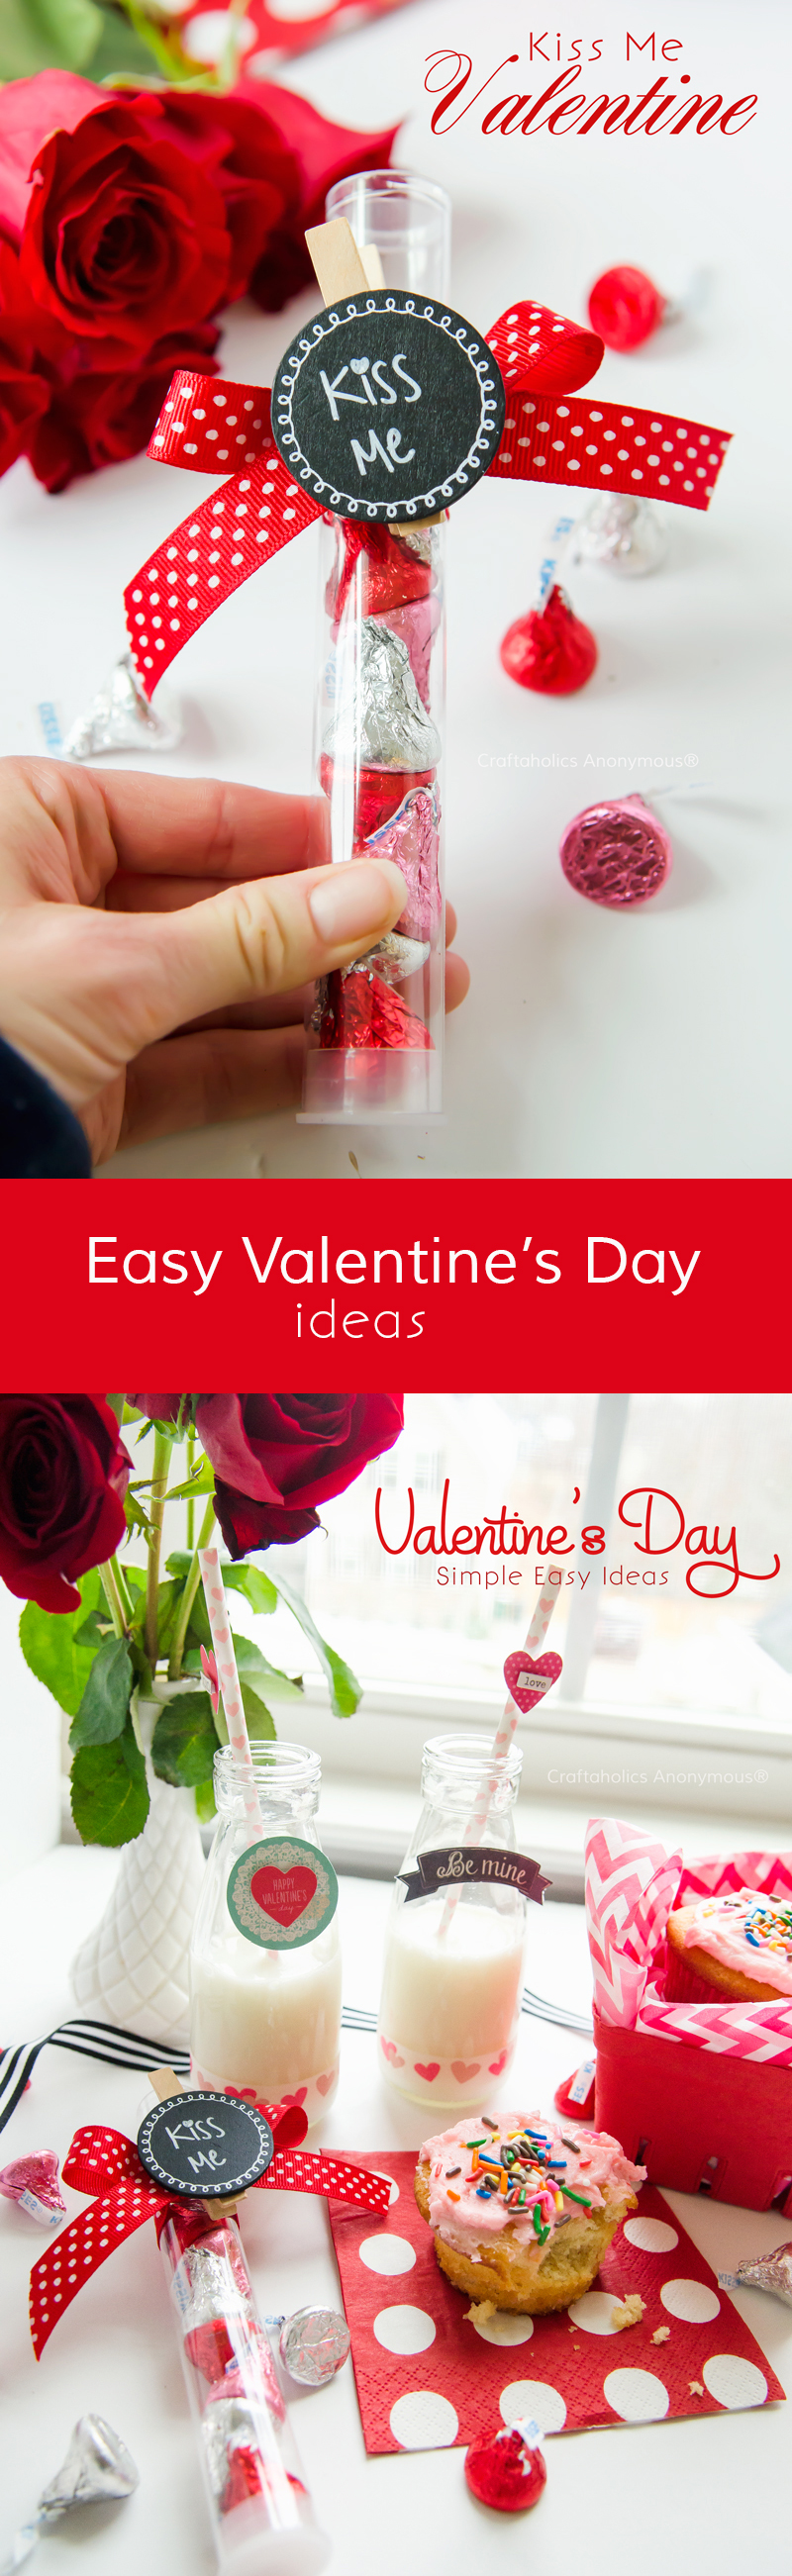 Easy Valentine Ideas that can be done quickly and on a small budget #OneSpotValentine